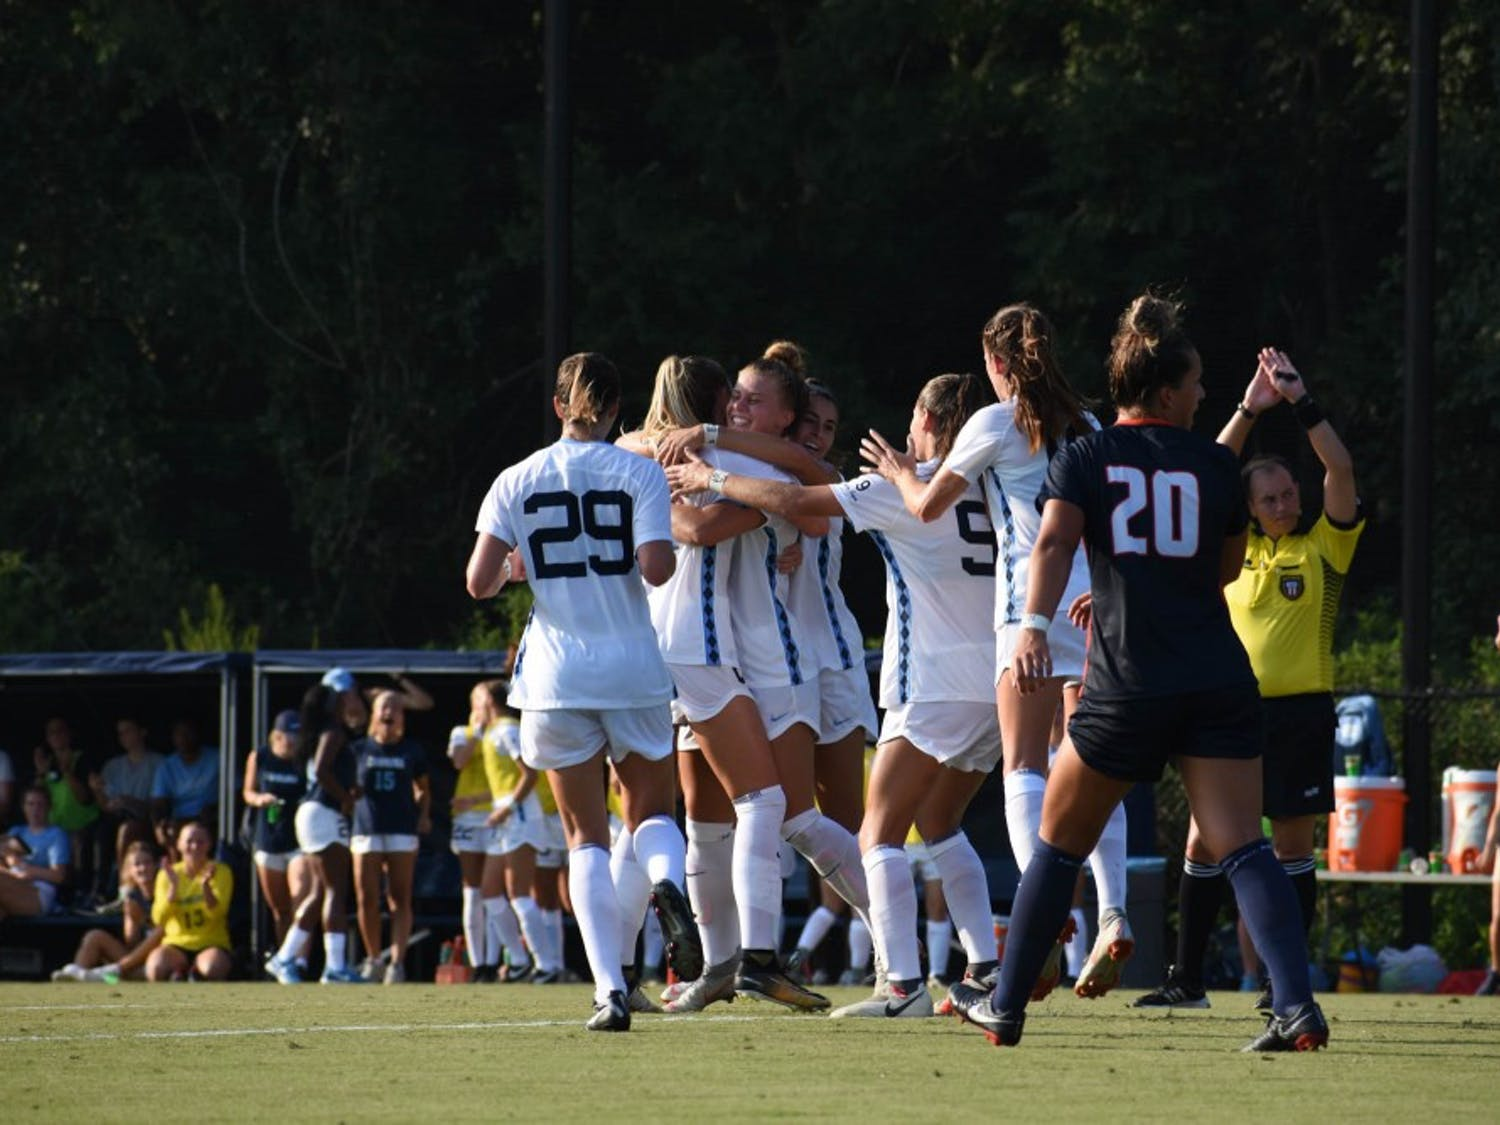 UNC celebrates after scoring a goal during its 3-1 win over Illinois on Aug. 16 in Chapel Hill.